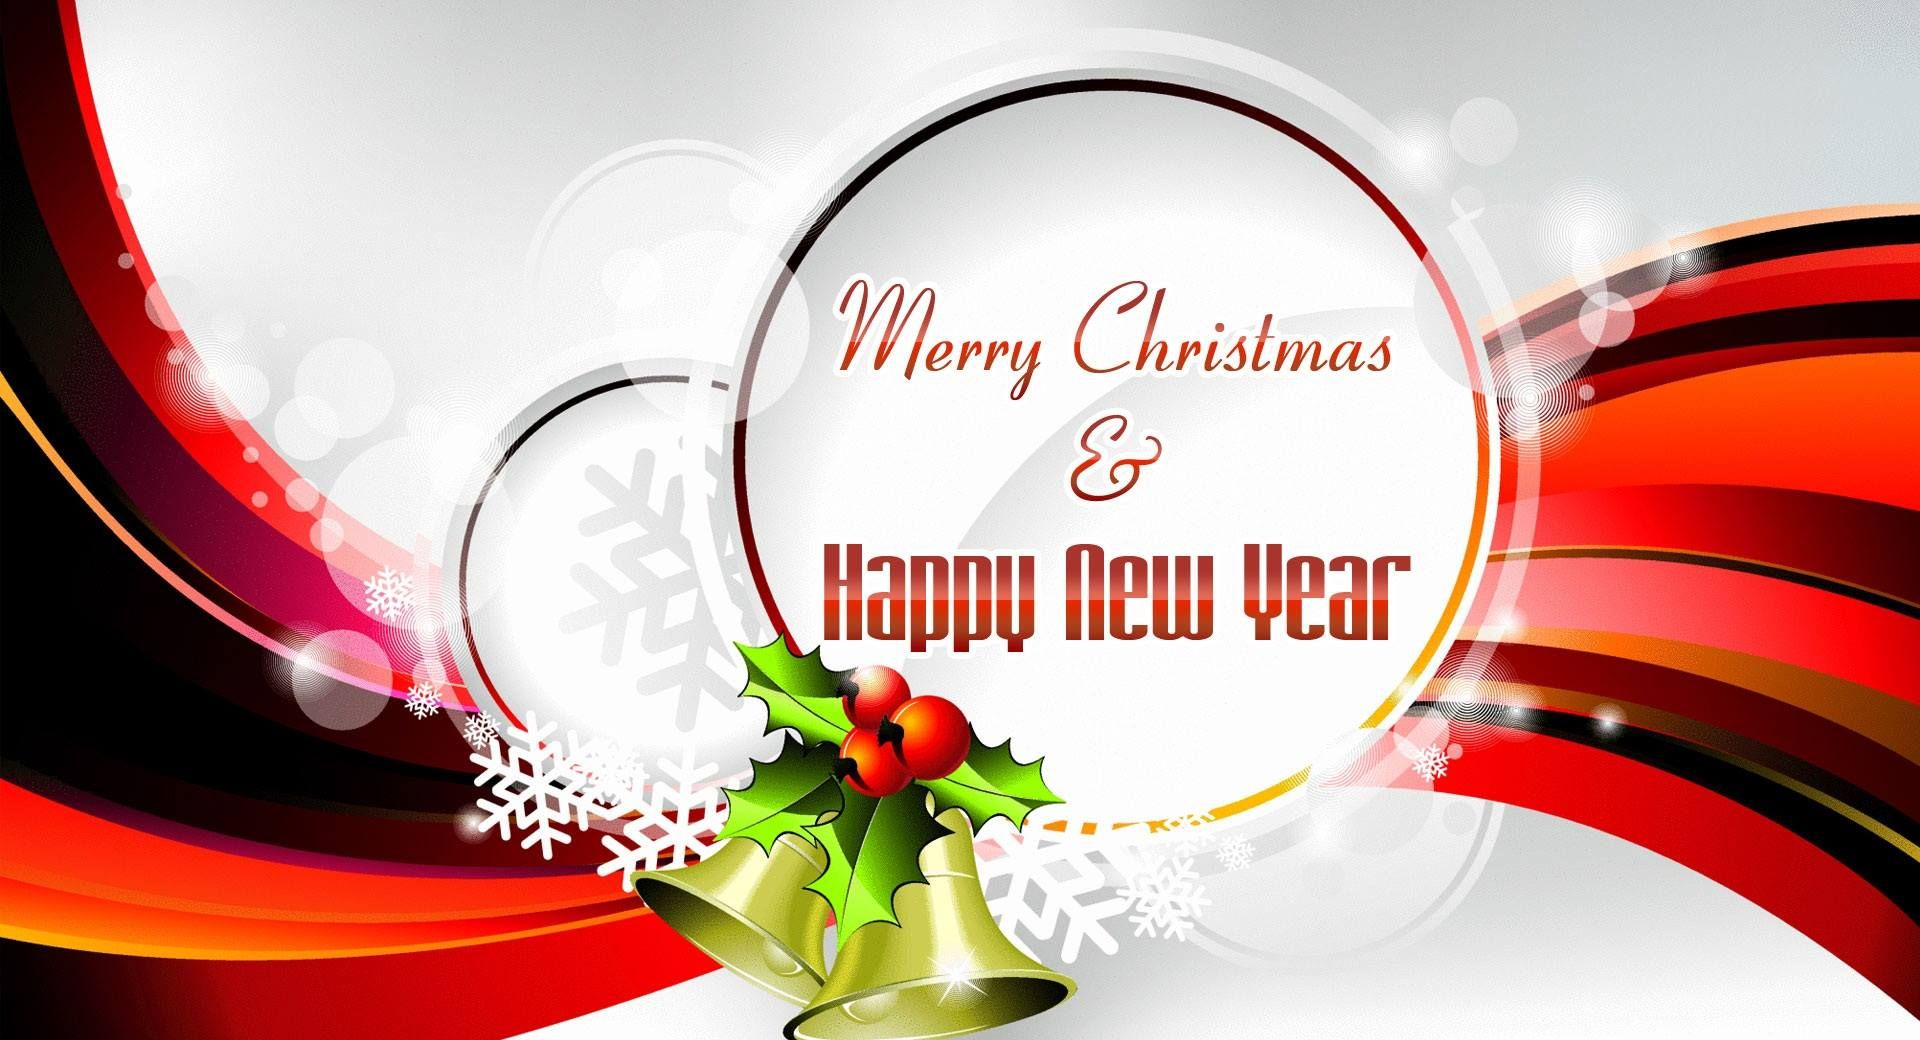 Explore Happy New Year Greetings And More Merry Christmas 2014